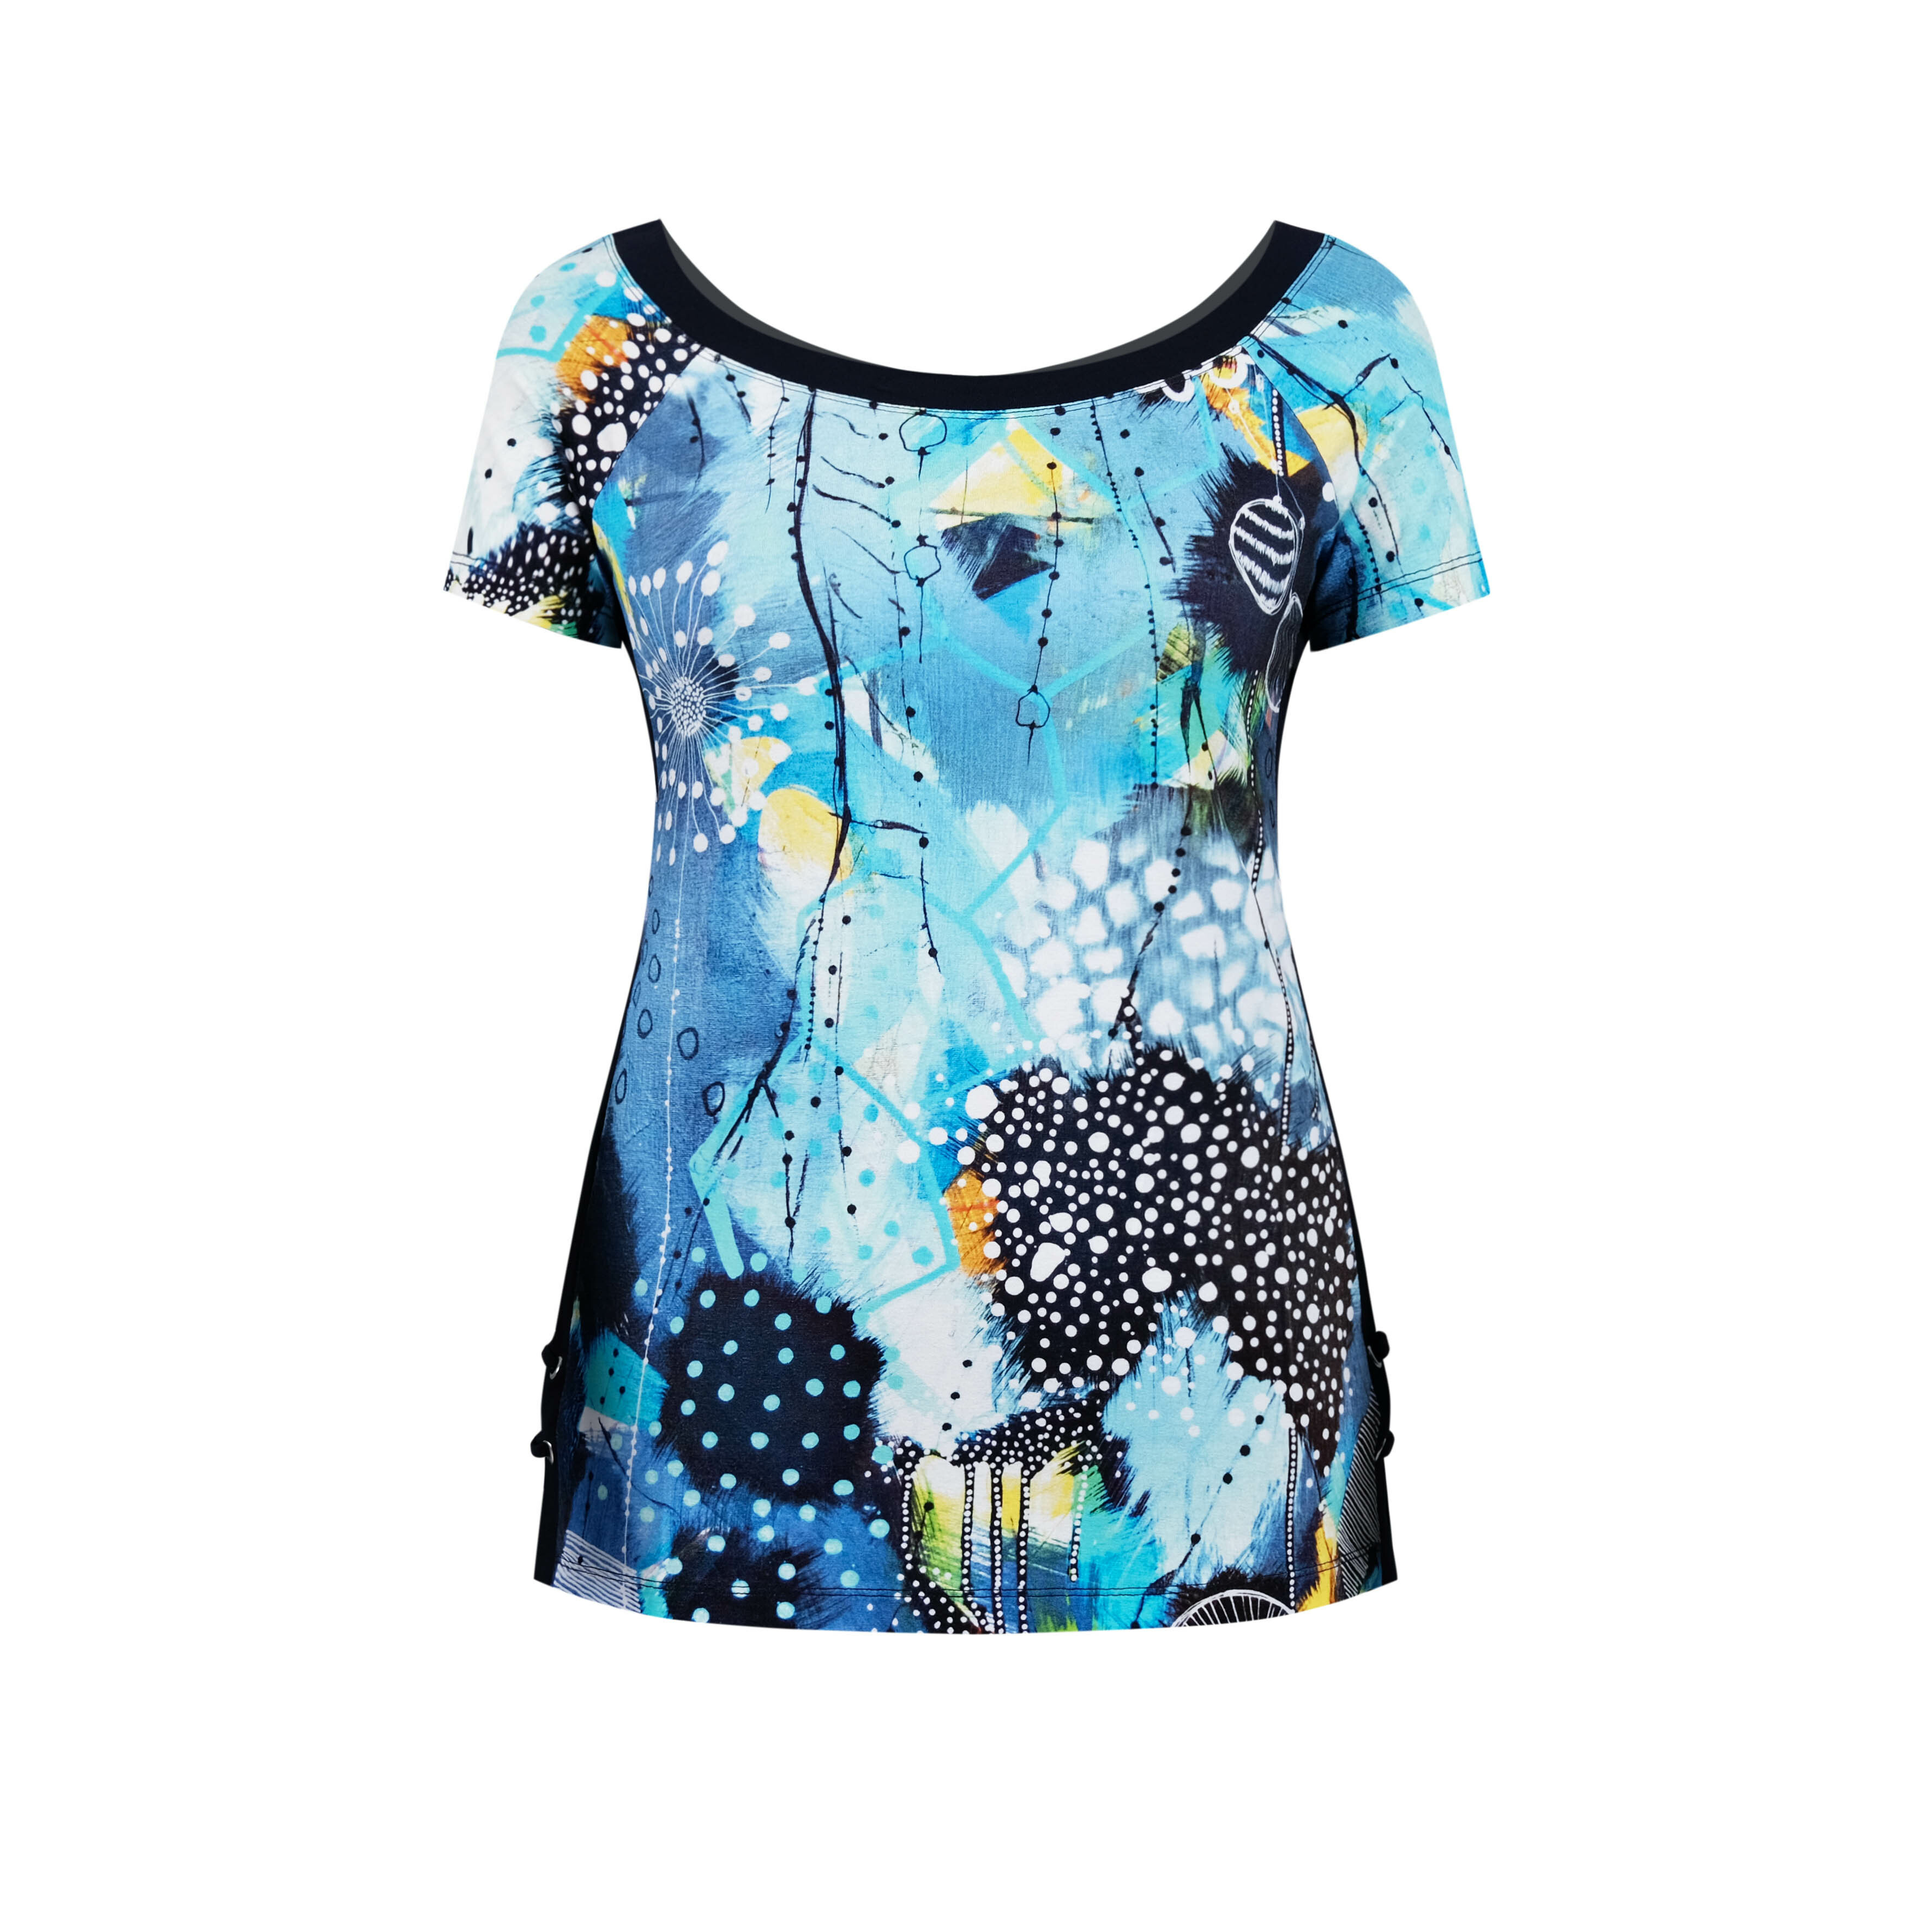 Simply Art Dolcezza: The Love of Blue Happiness Side Criss Cross Abstract Art Top (1 Left!)